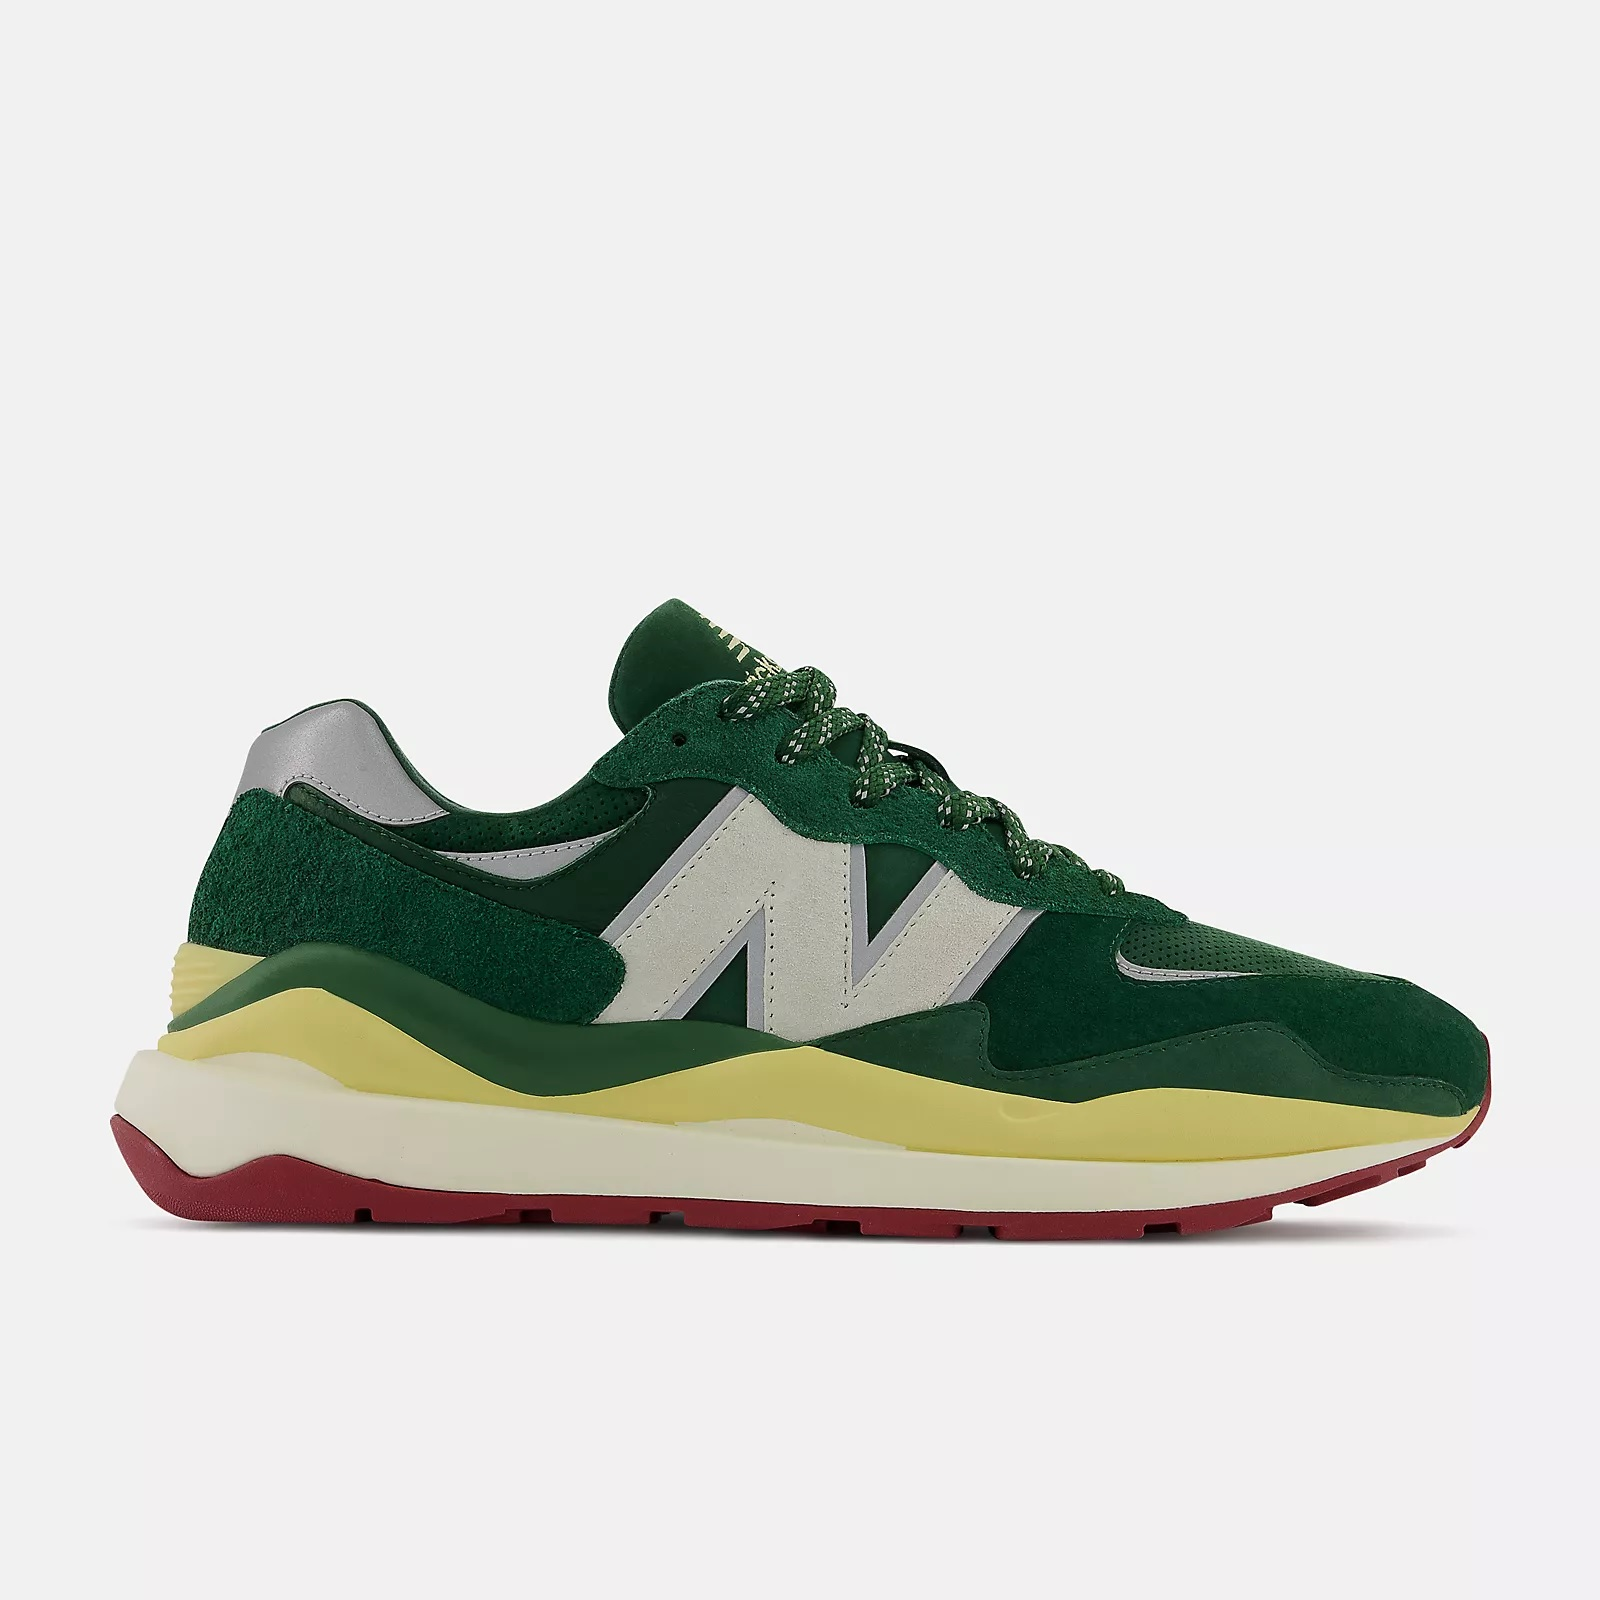 Bricks and Wood x New Balance 57/40 'Forest Green'}